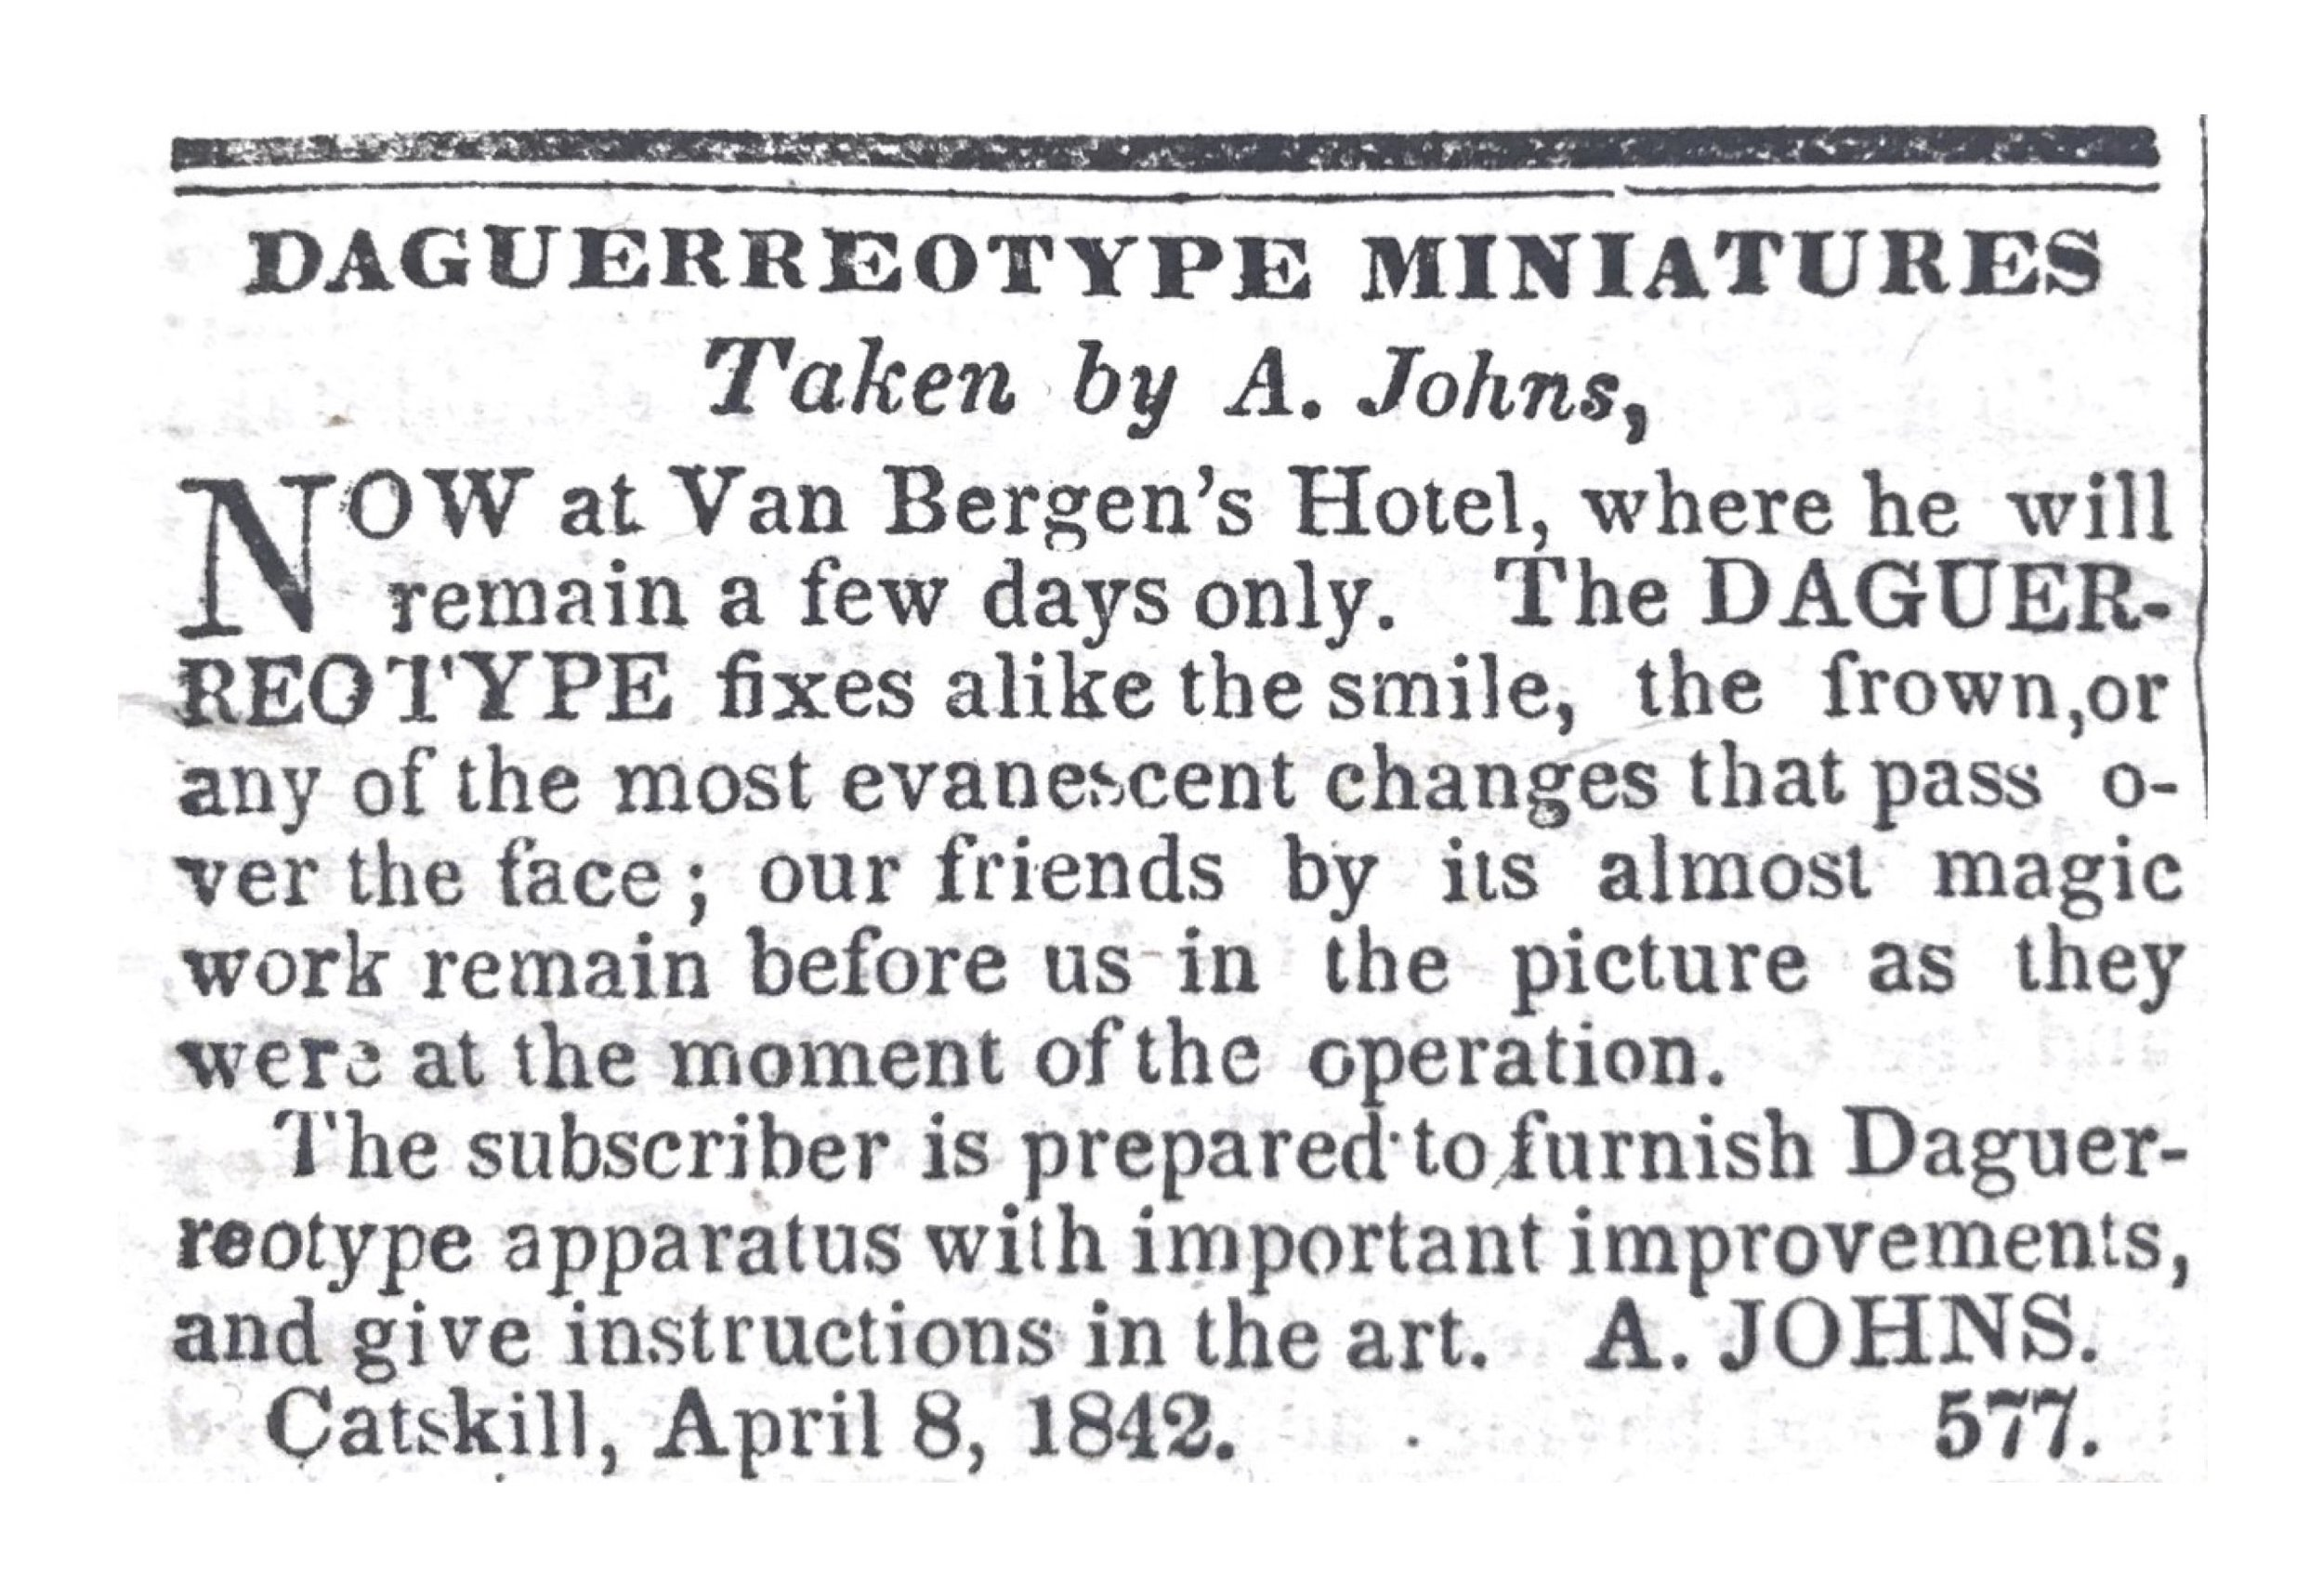 A Daguerrotype photographer's advertisement in the Catskill Messenger from April of 1842.